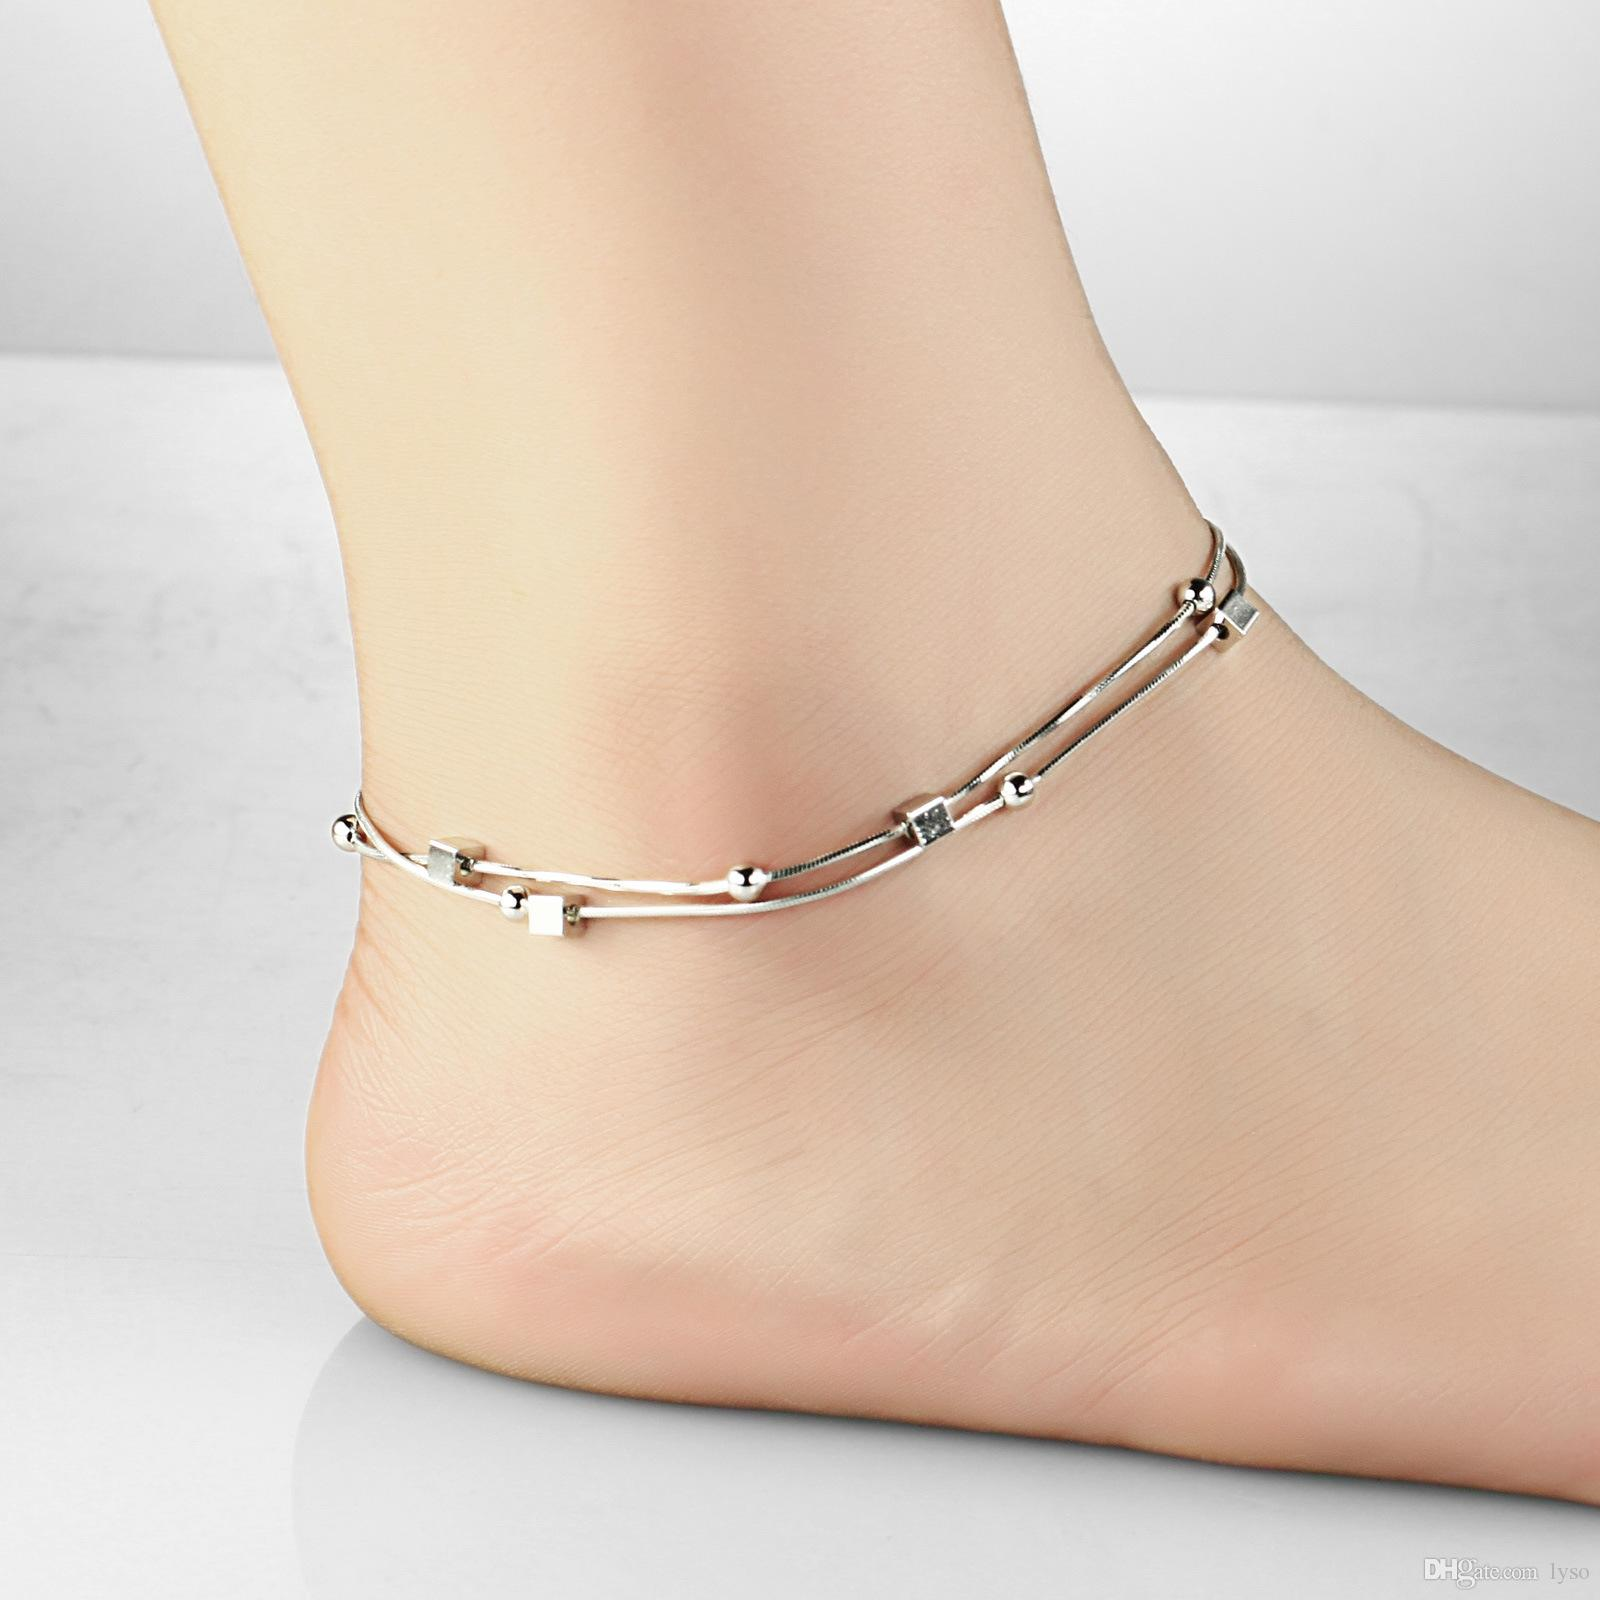 chain nomination bella gold cz silver zoom women anklet rose plated white ankle